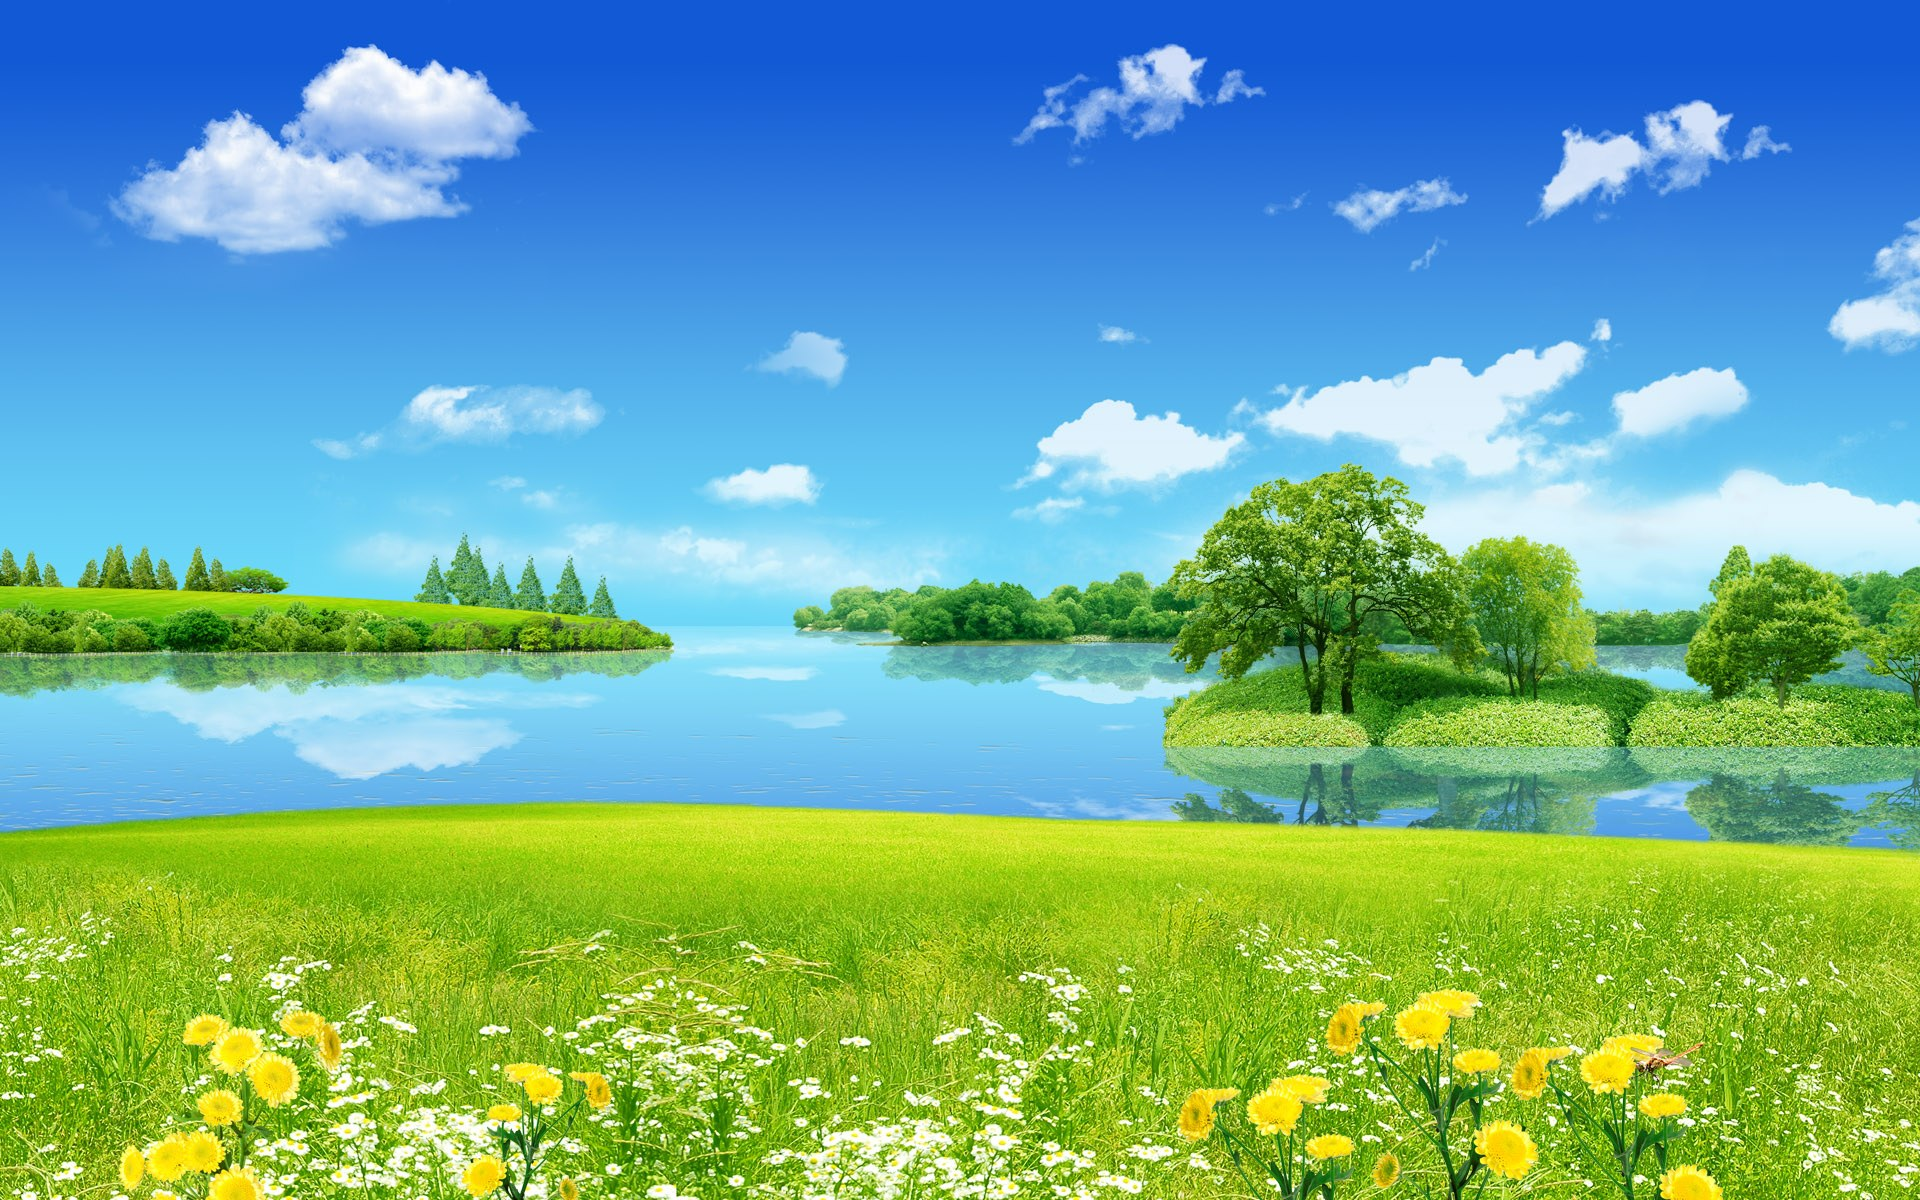 Nature Wallpaper Designs Design Creative Cartoon Dreaml